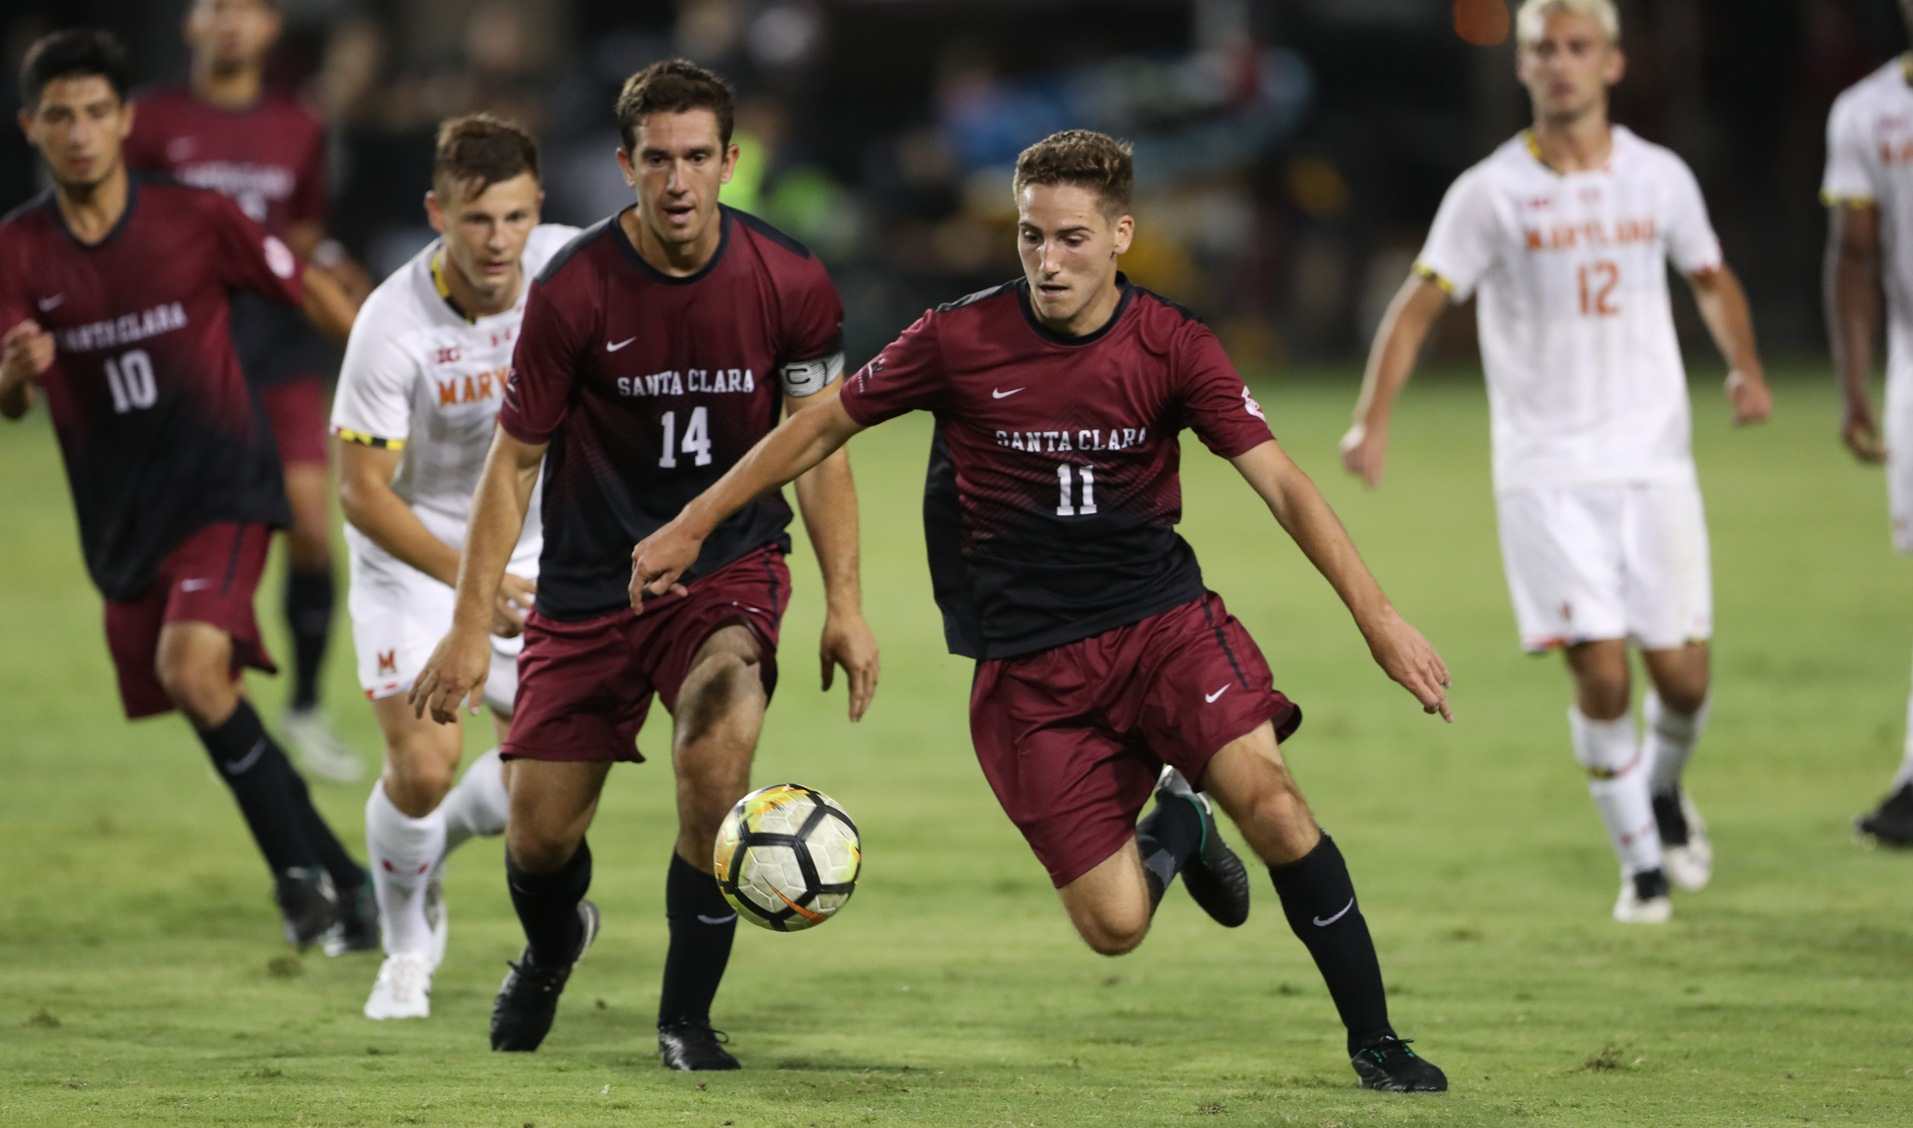 Men's Soccer Downs Saint Mary's To Improve To 2-0 In WCC Play